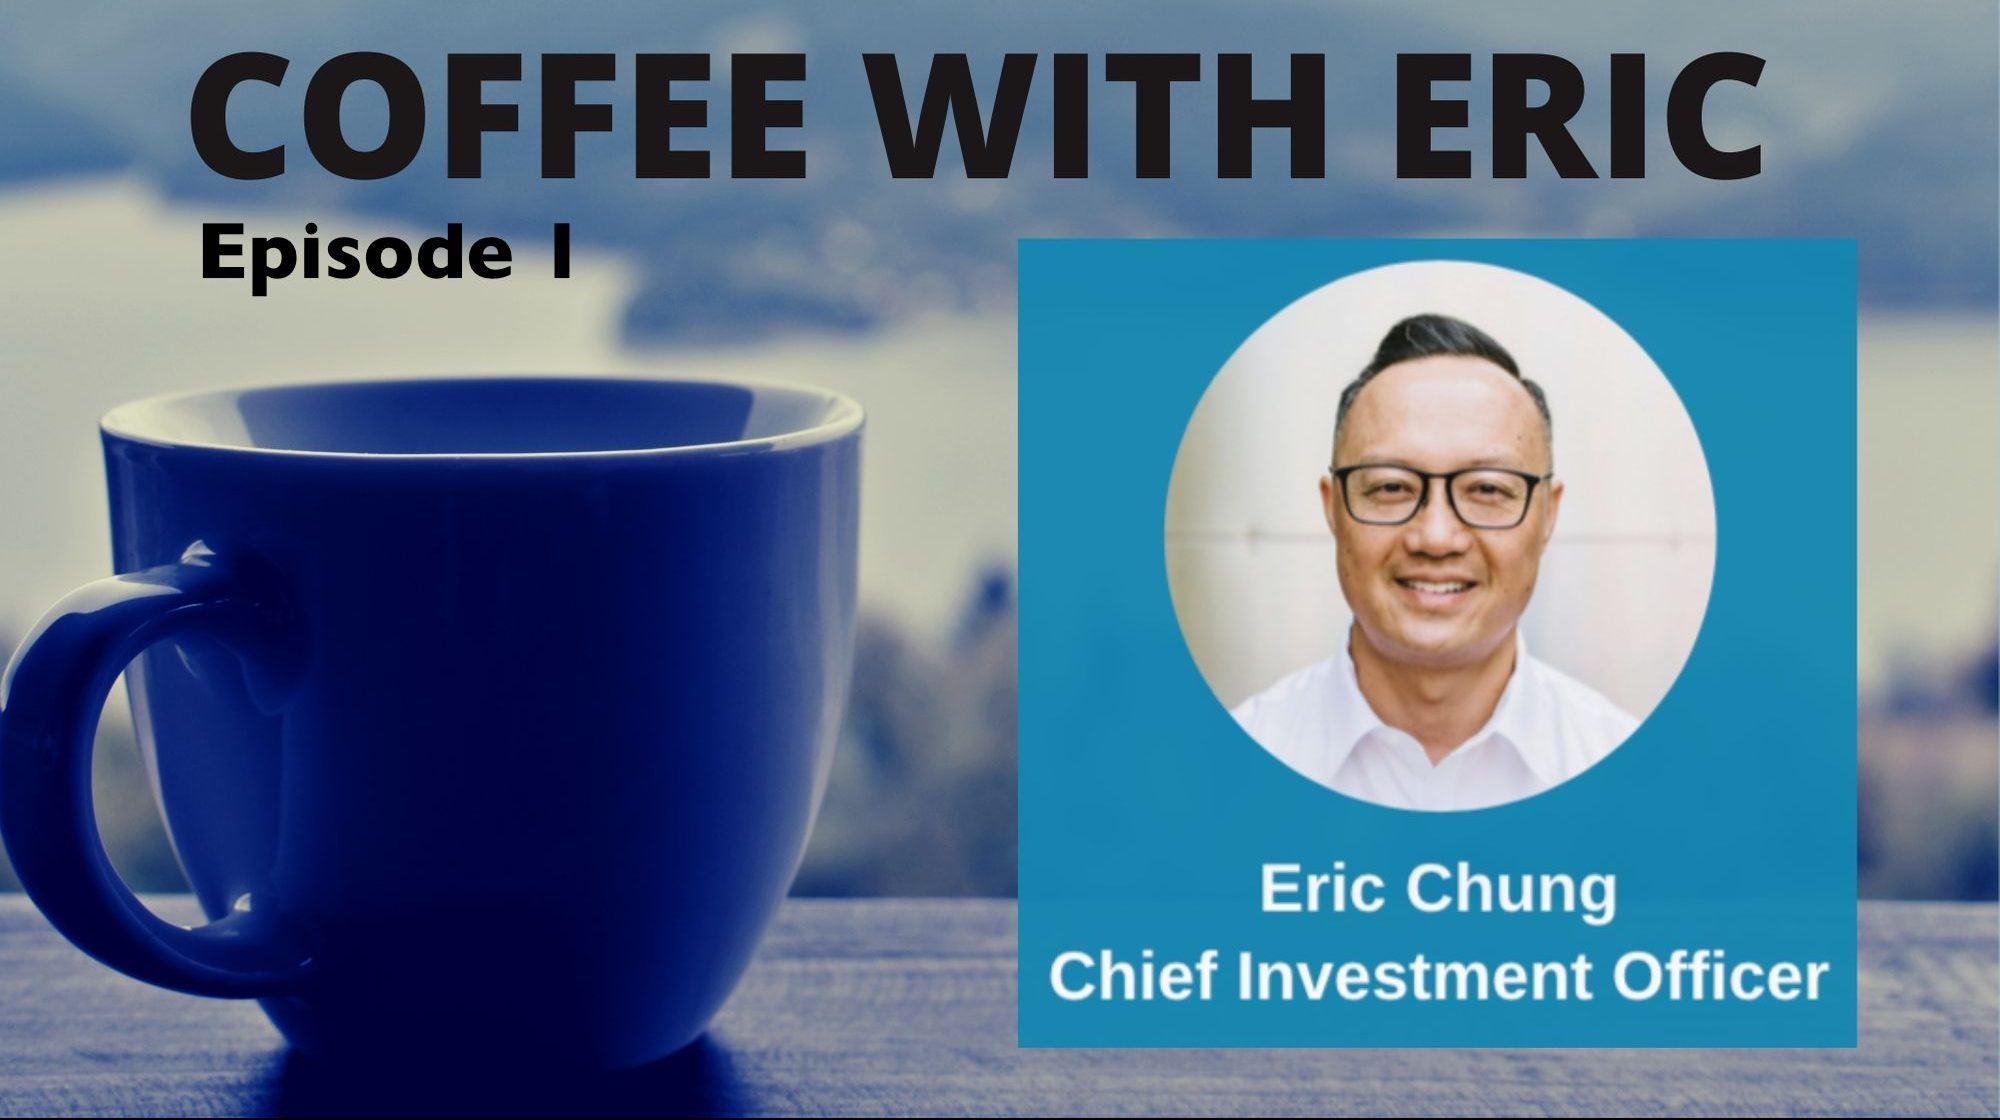 Coffee With Eric Episode 1